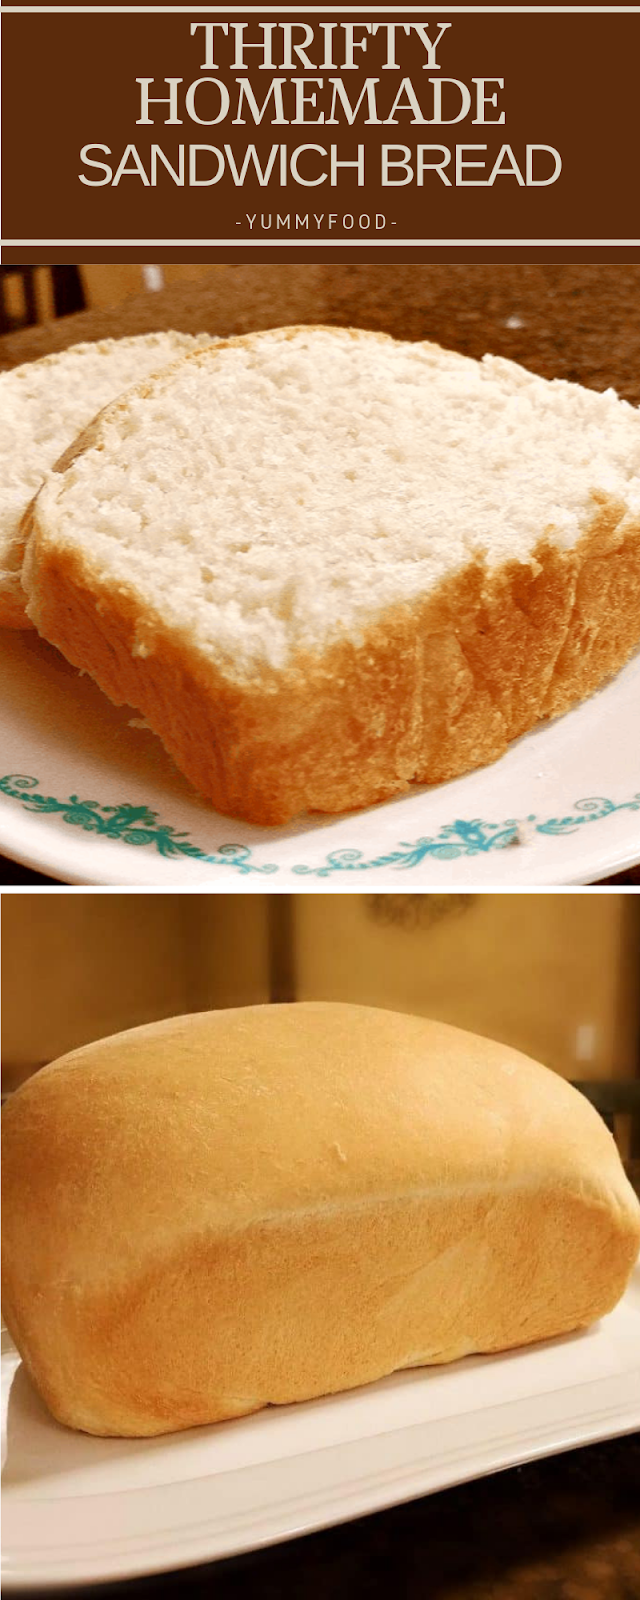 Thrifty Homemade Sandwich Bread